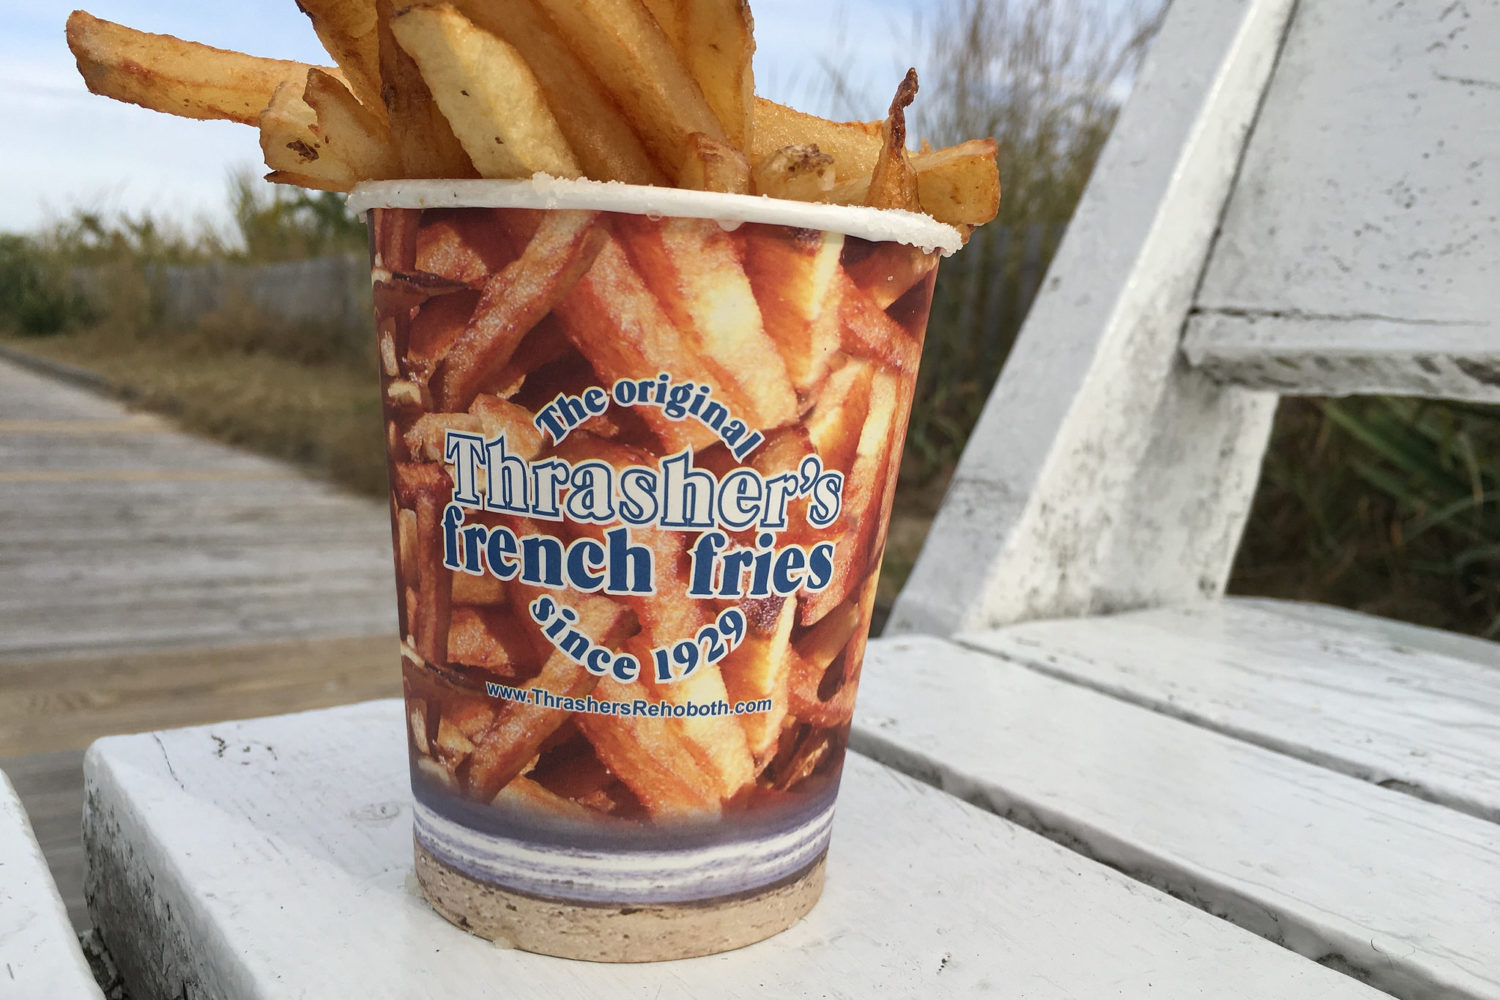 Fries from Thrasher's. Photograph by Michele Dorsey Walfred from Flickr Creative Commons.